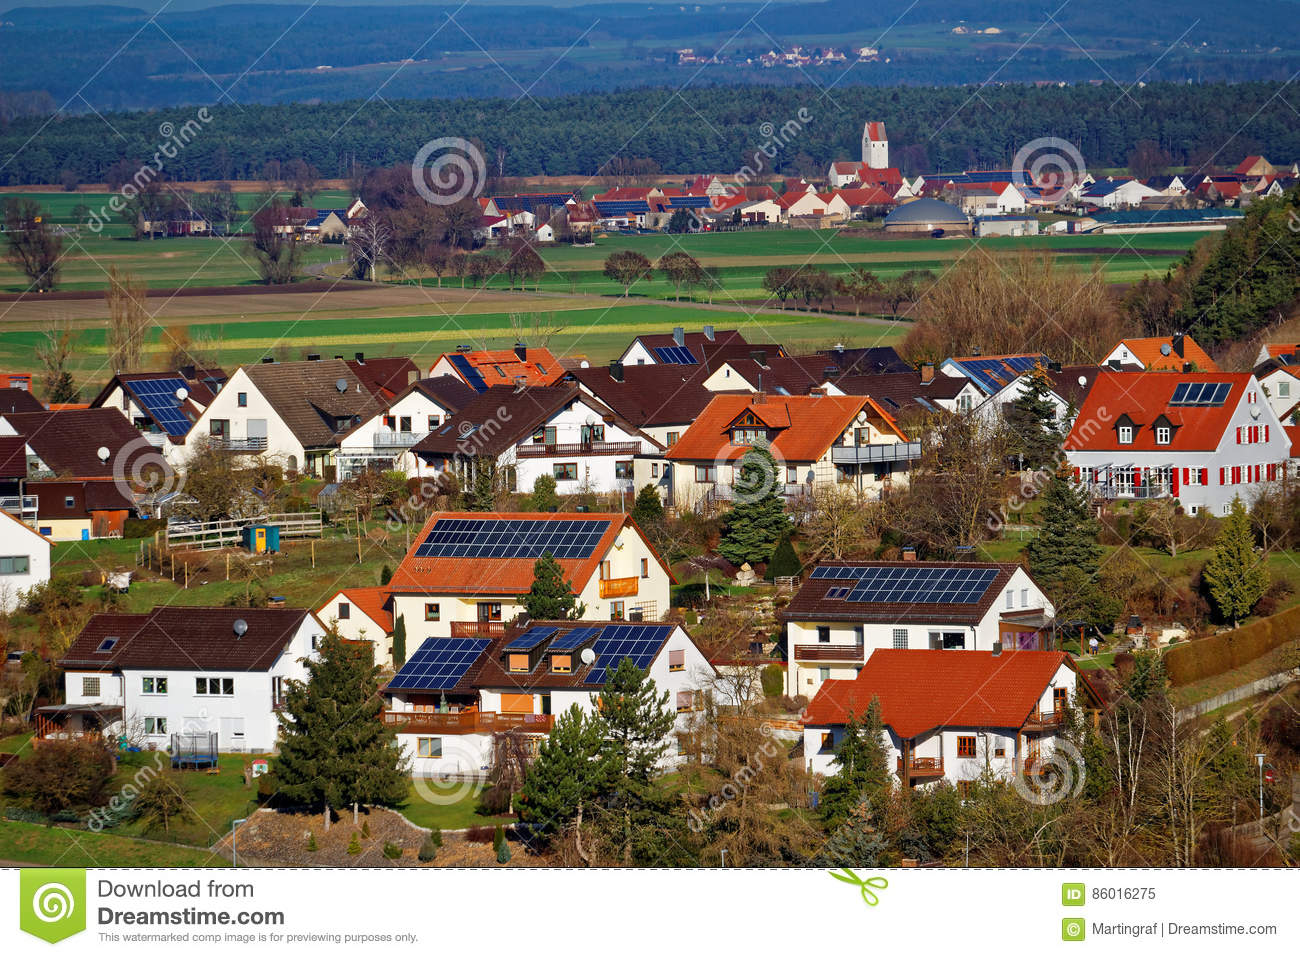 Solar energy panels on roofs of country village